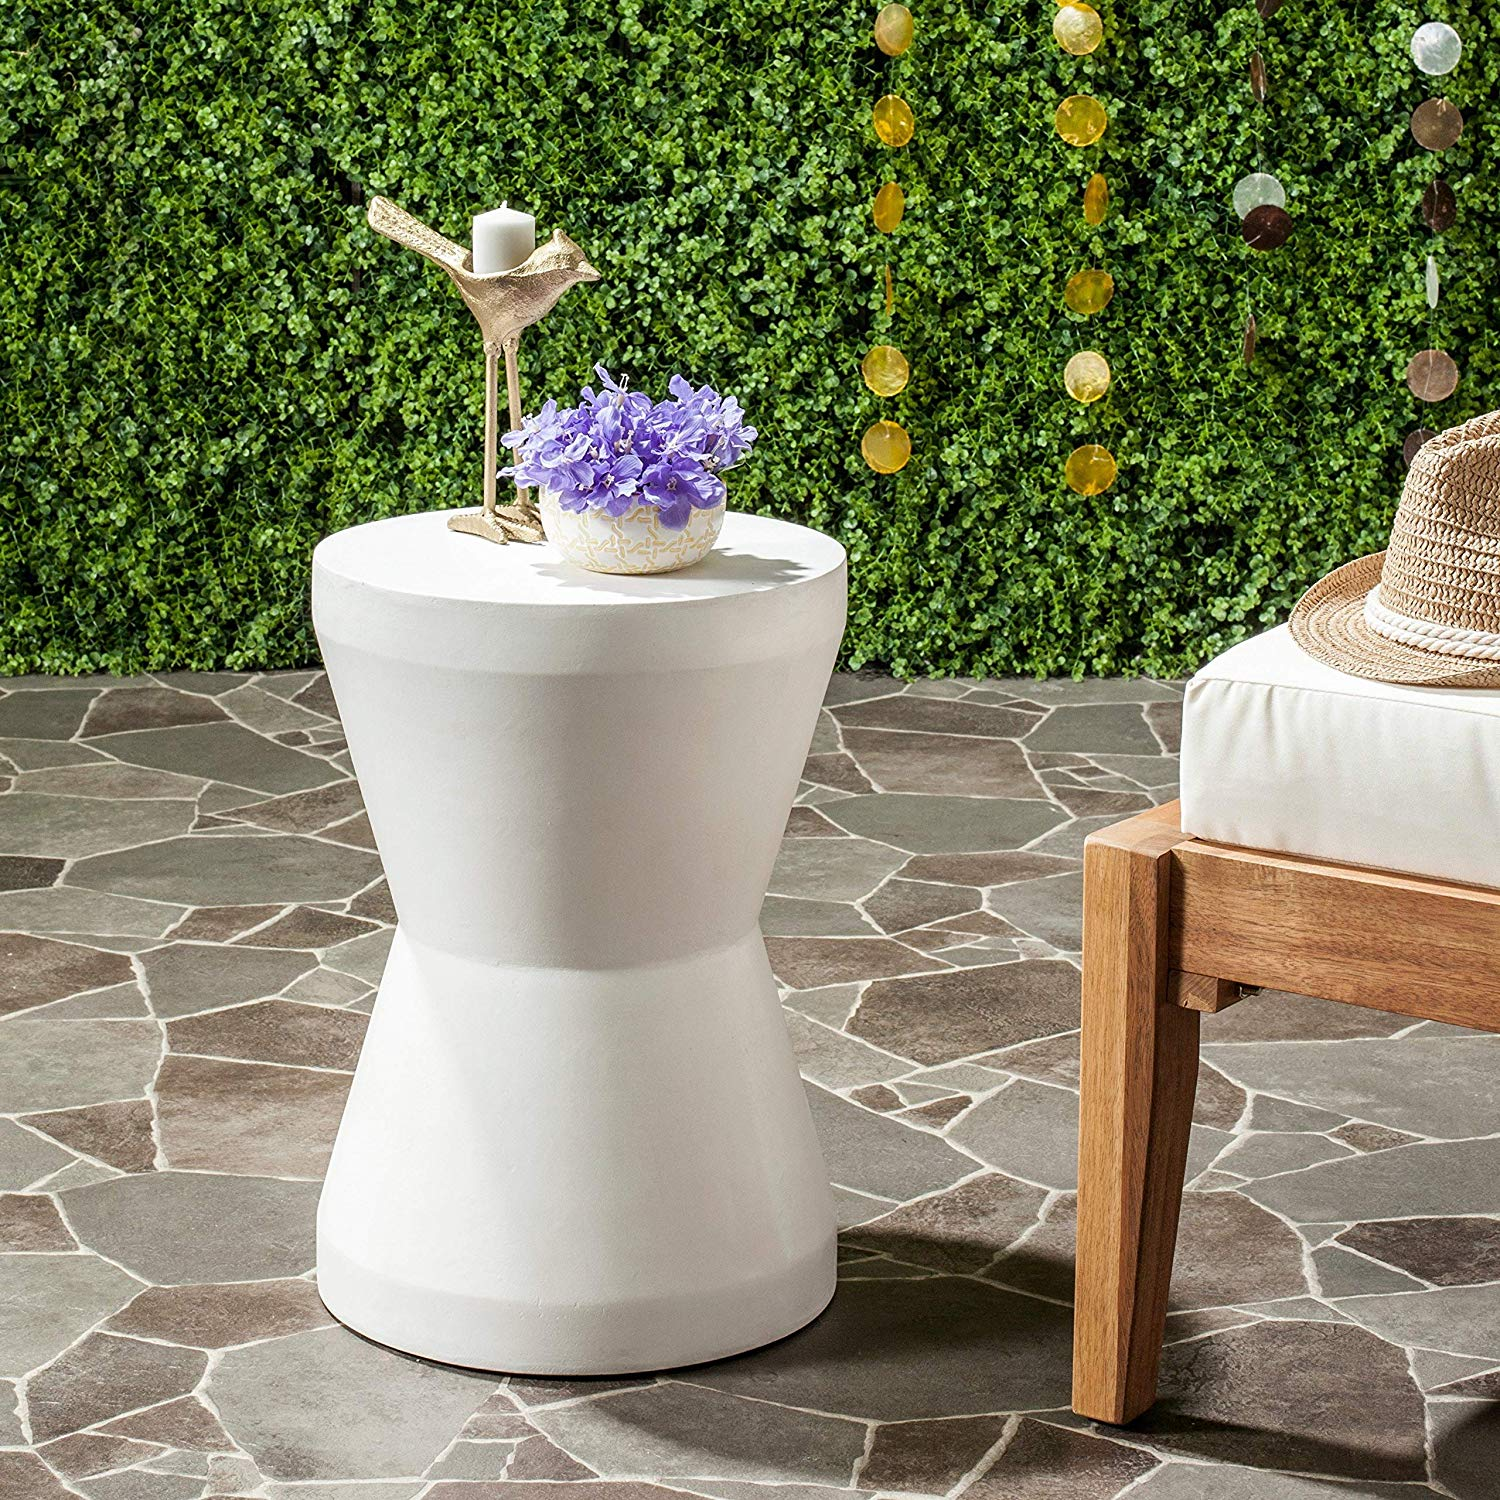 safavieh outdoor collection torre modern concrete ivory accent table inch garden colorful coffee tables small metal outside target waldo pork pie drum throne pier desk gothic